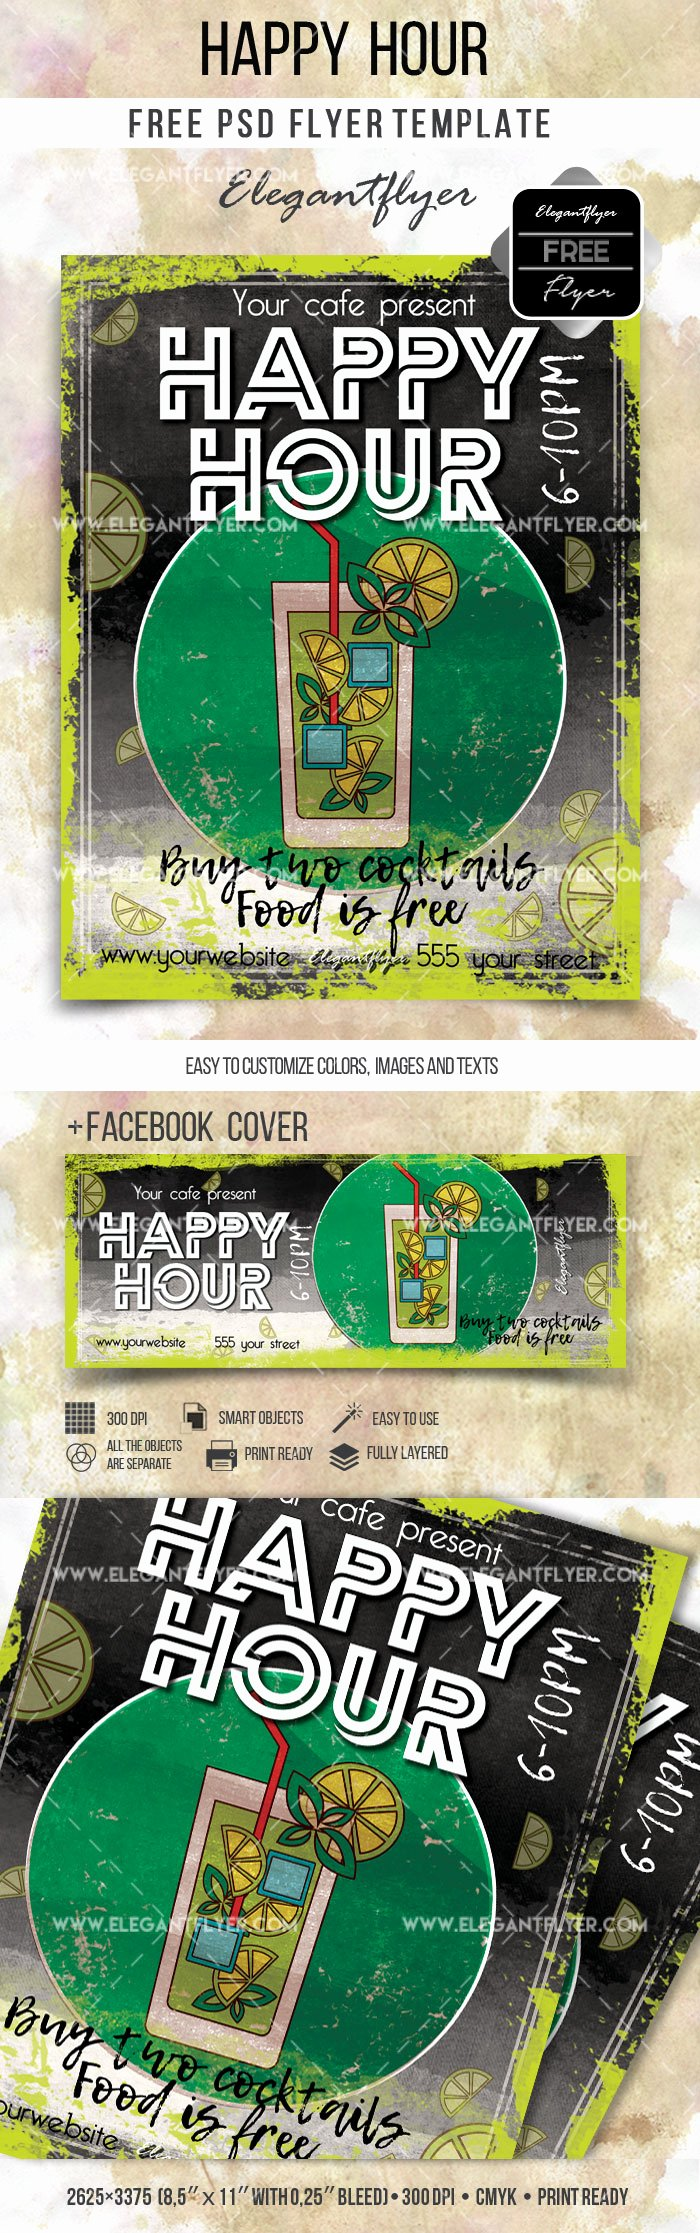 Happy Hour Flyer Template Free Fresh Happy Hour Flyer Free Psd Template – by Elegantflyer